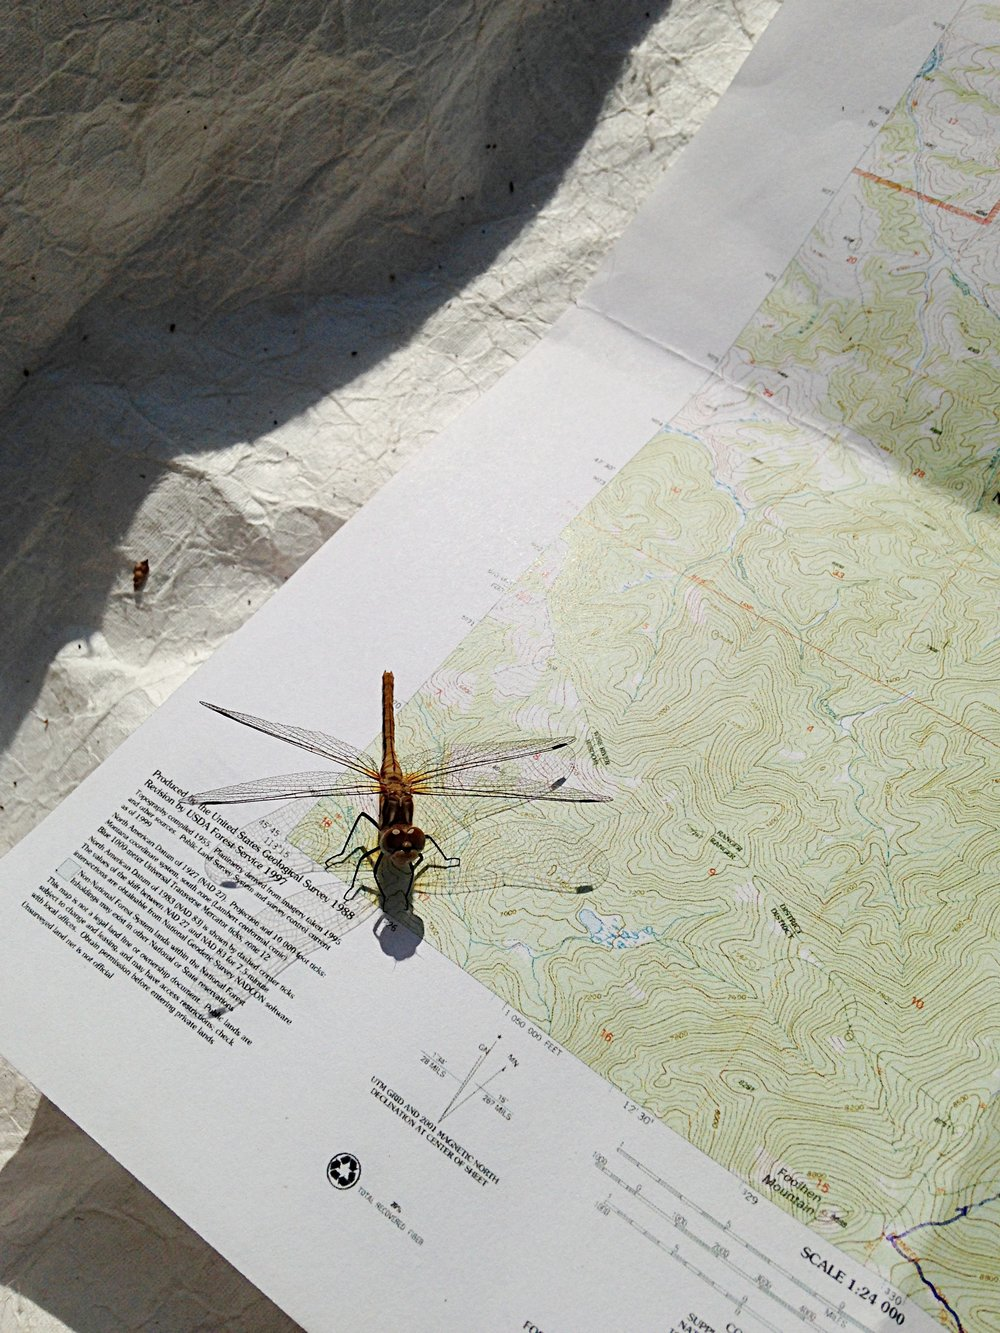 Getting route finding advice from a dragonfly.